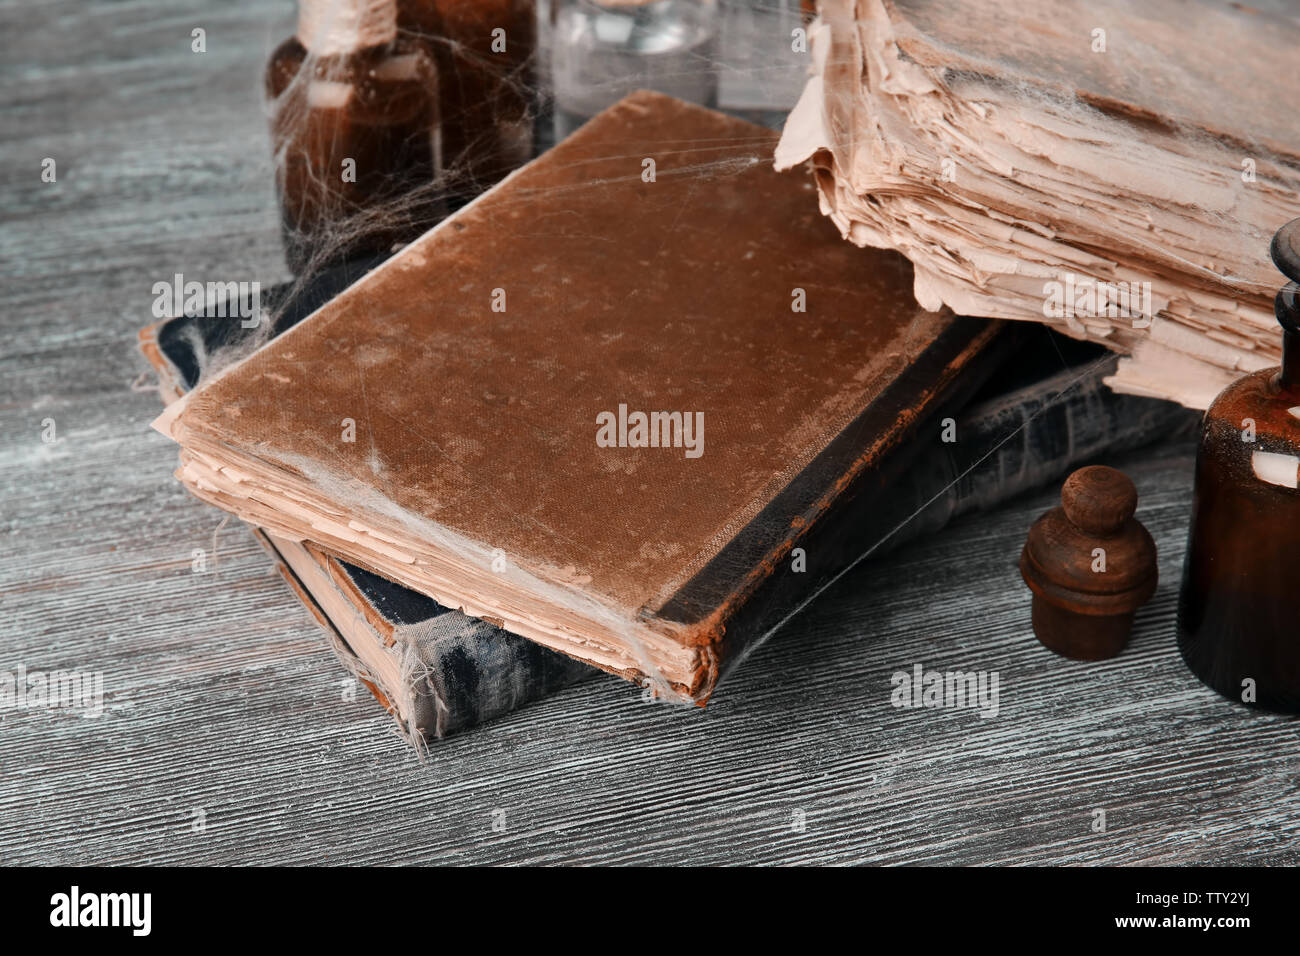 Old books with spiderweb on wooden background, closeup - Stock Image